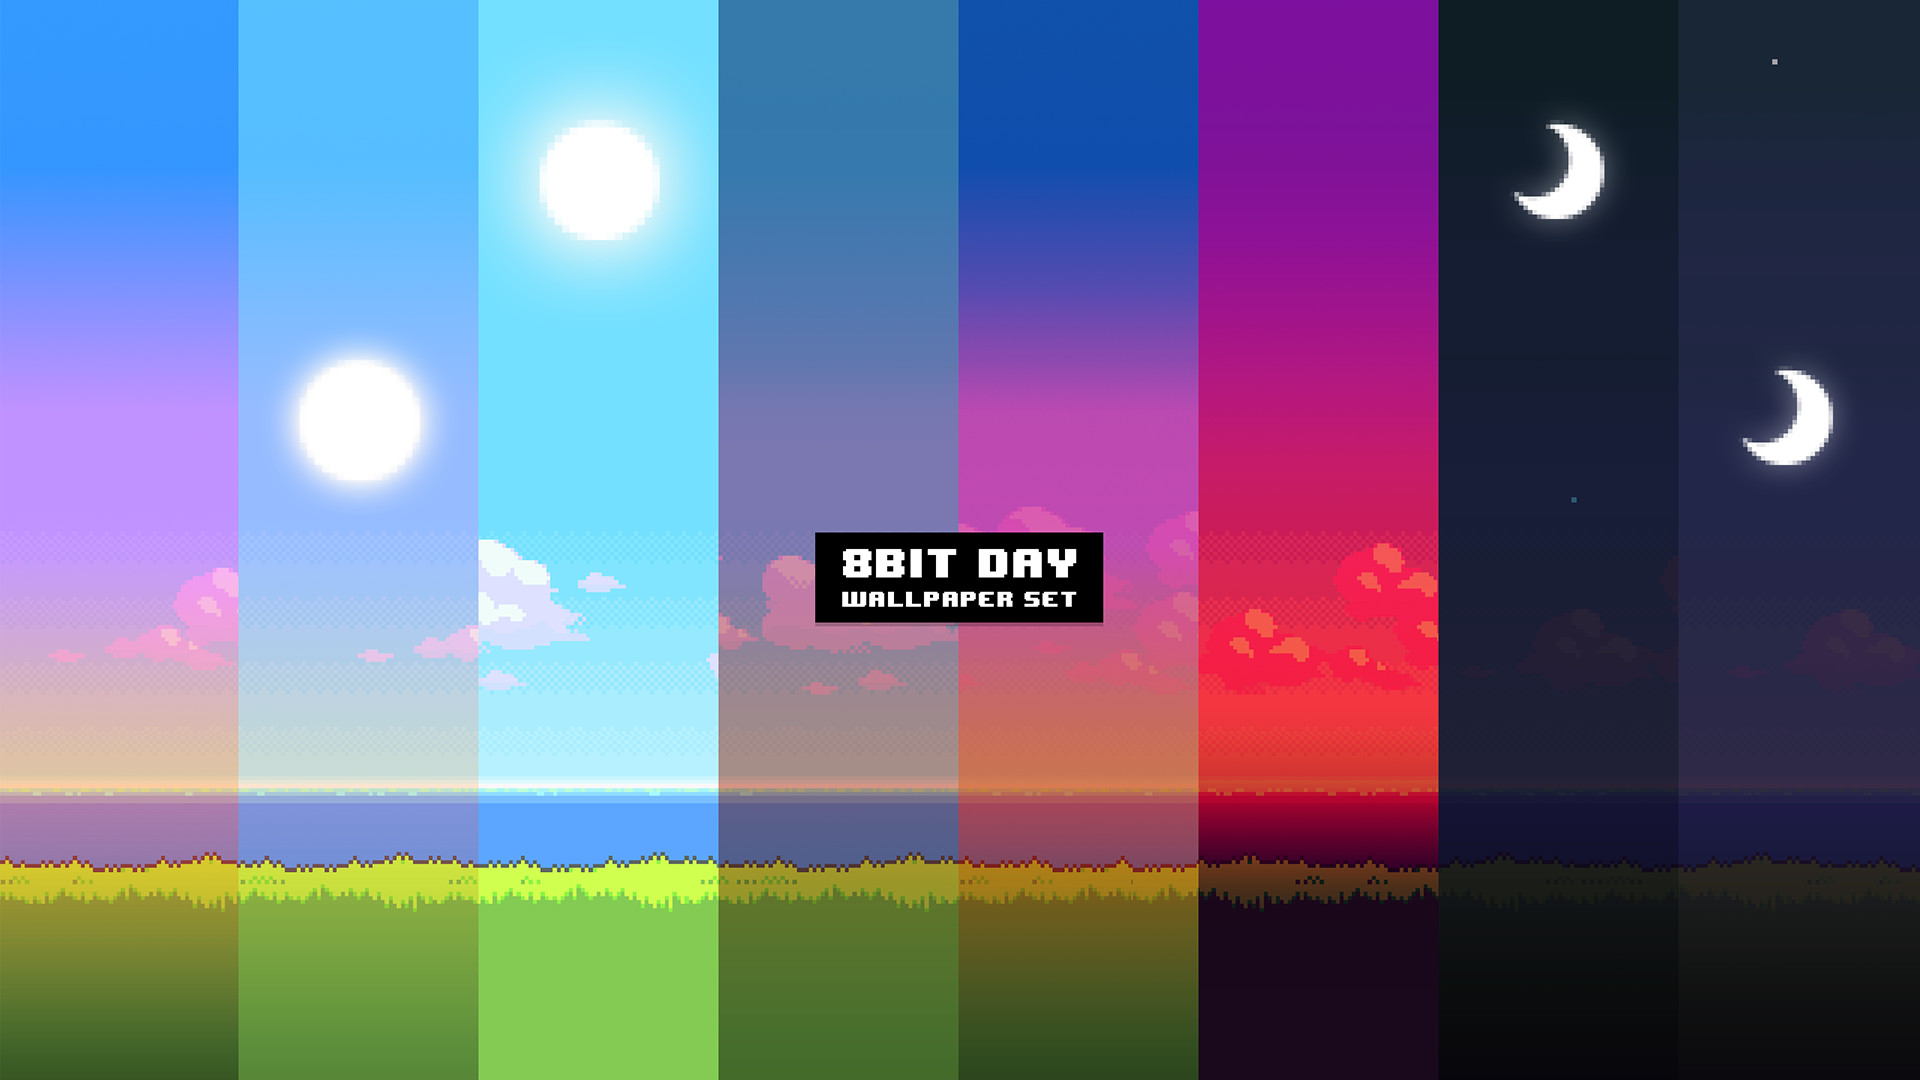 UPDATE: New version of the '8Bit Day' Wallpaper Set. Pixel wallpaper  changes based on time of day! [Download different resolutions and  installation …